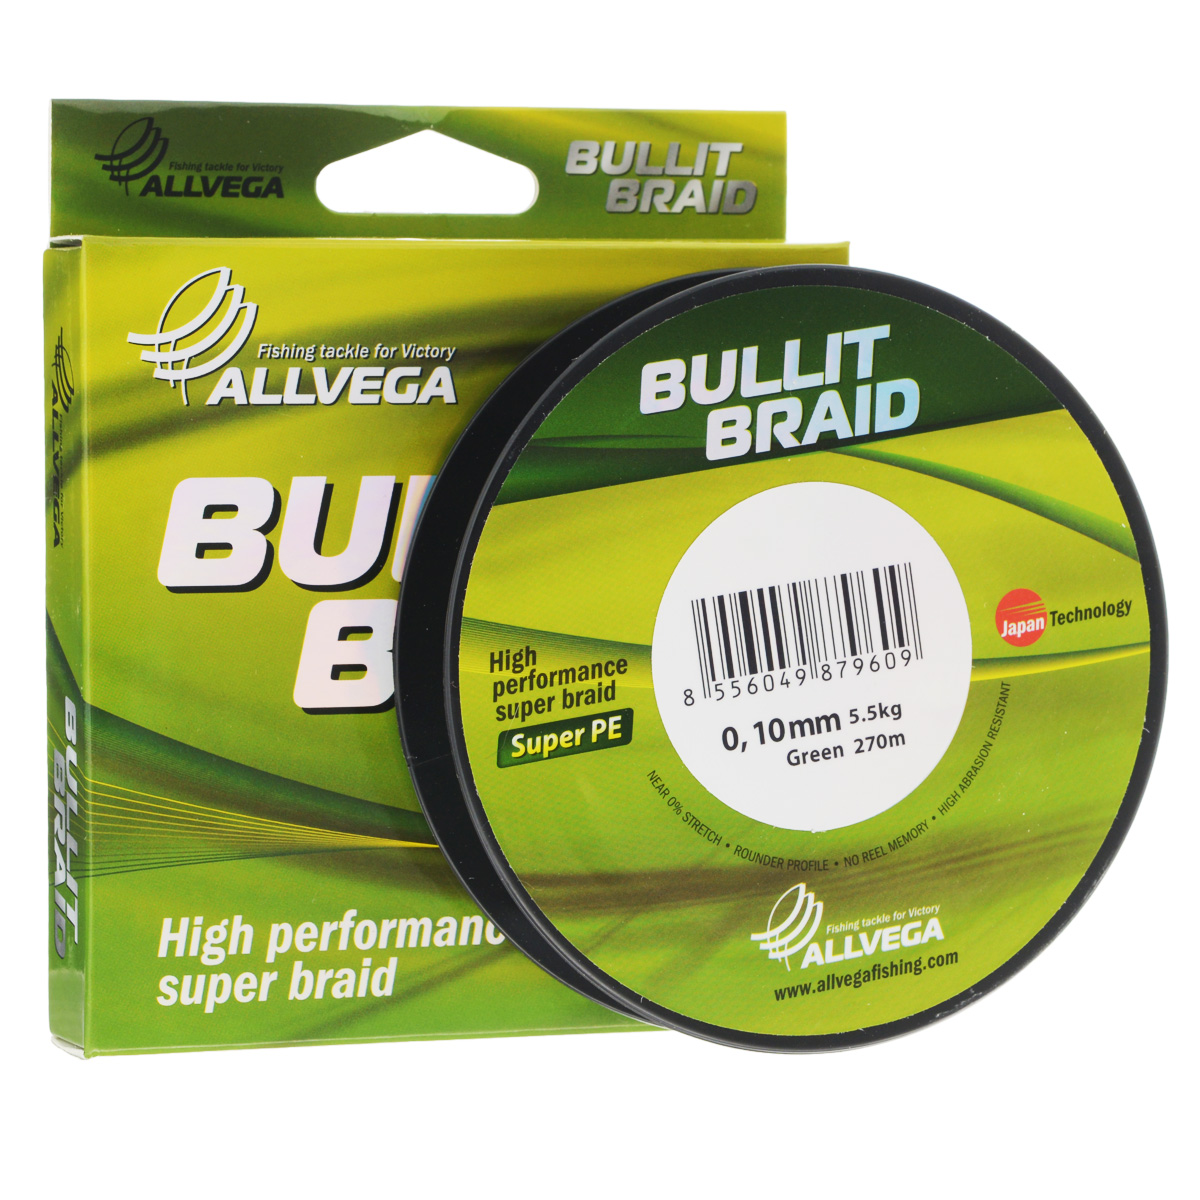 Леска плетеная Allvega Bullit Braid, цвет: темно-зеленый, 270 м, 0,10 мм, 5,5 кг 1pc od 13mm x 600mm cylinder liner rail linear shaft optical axis